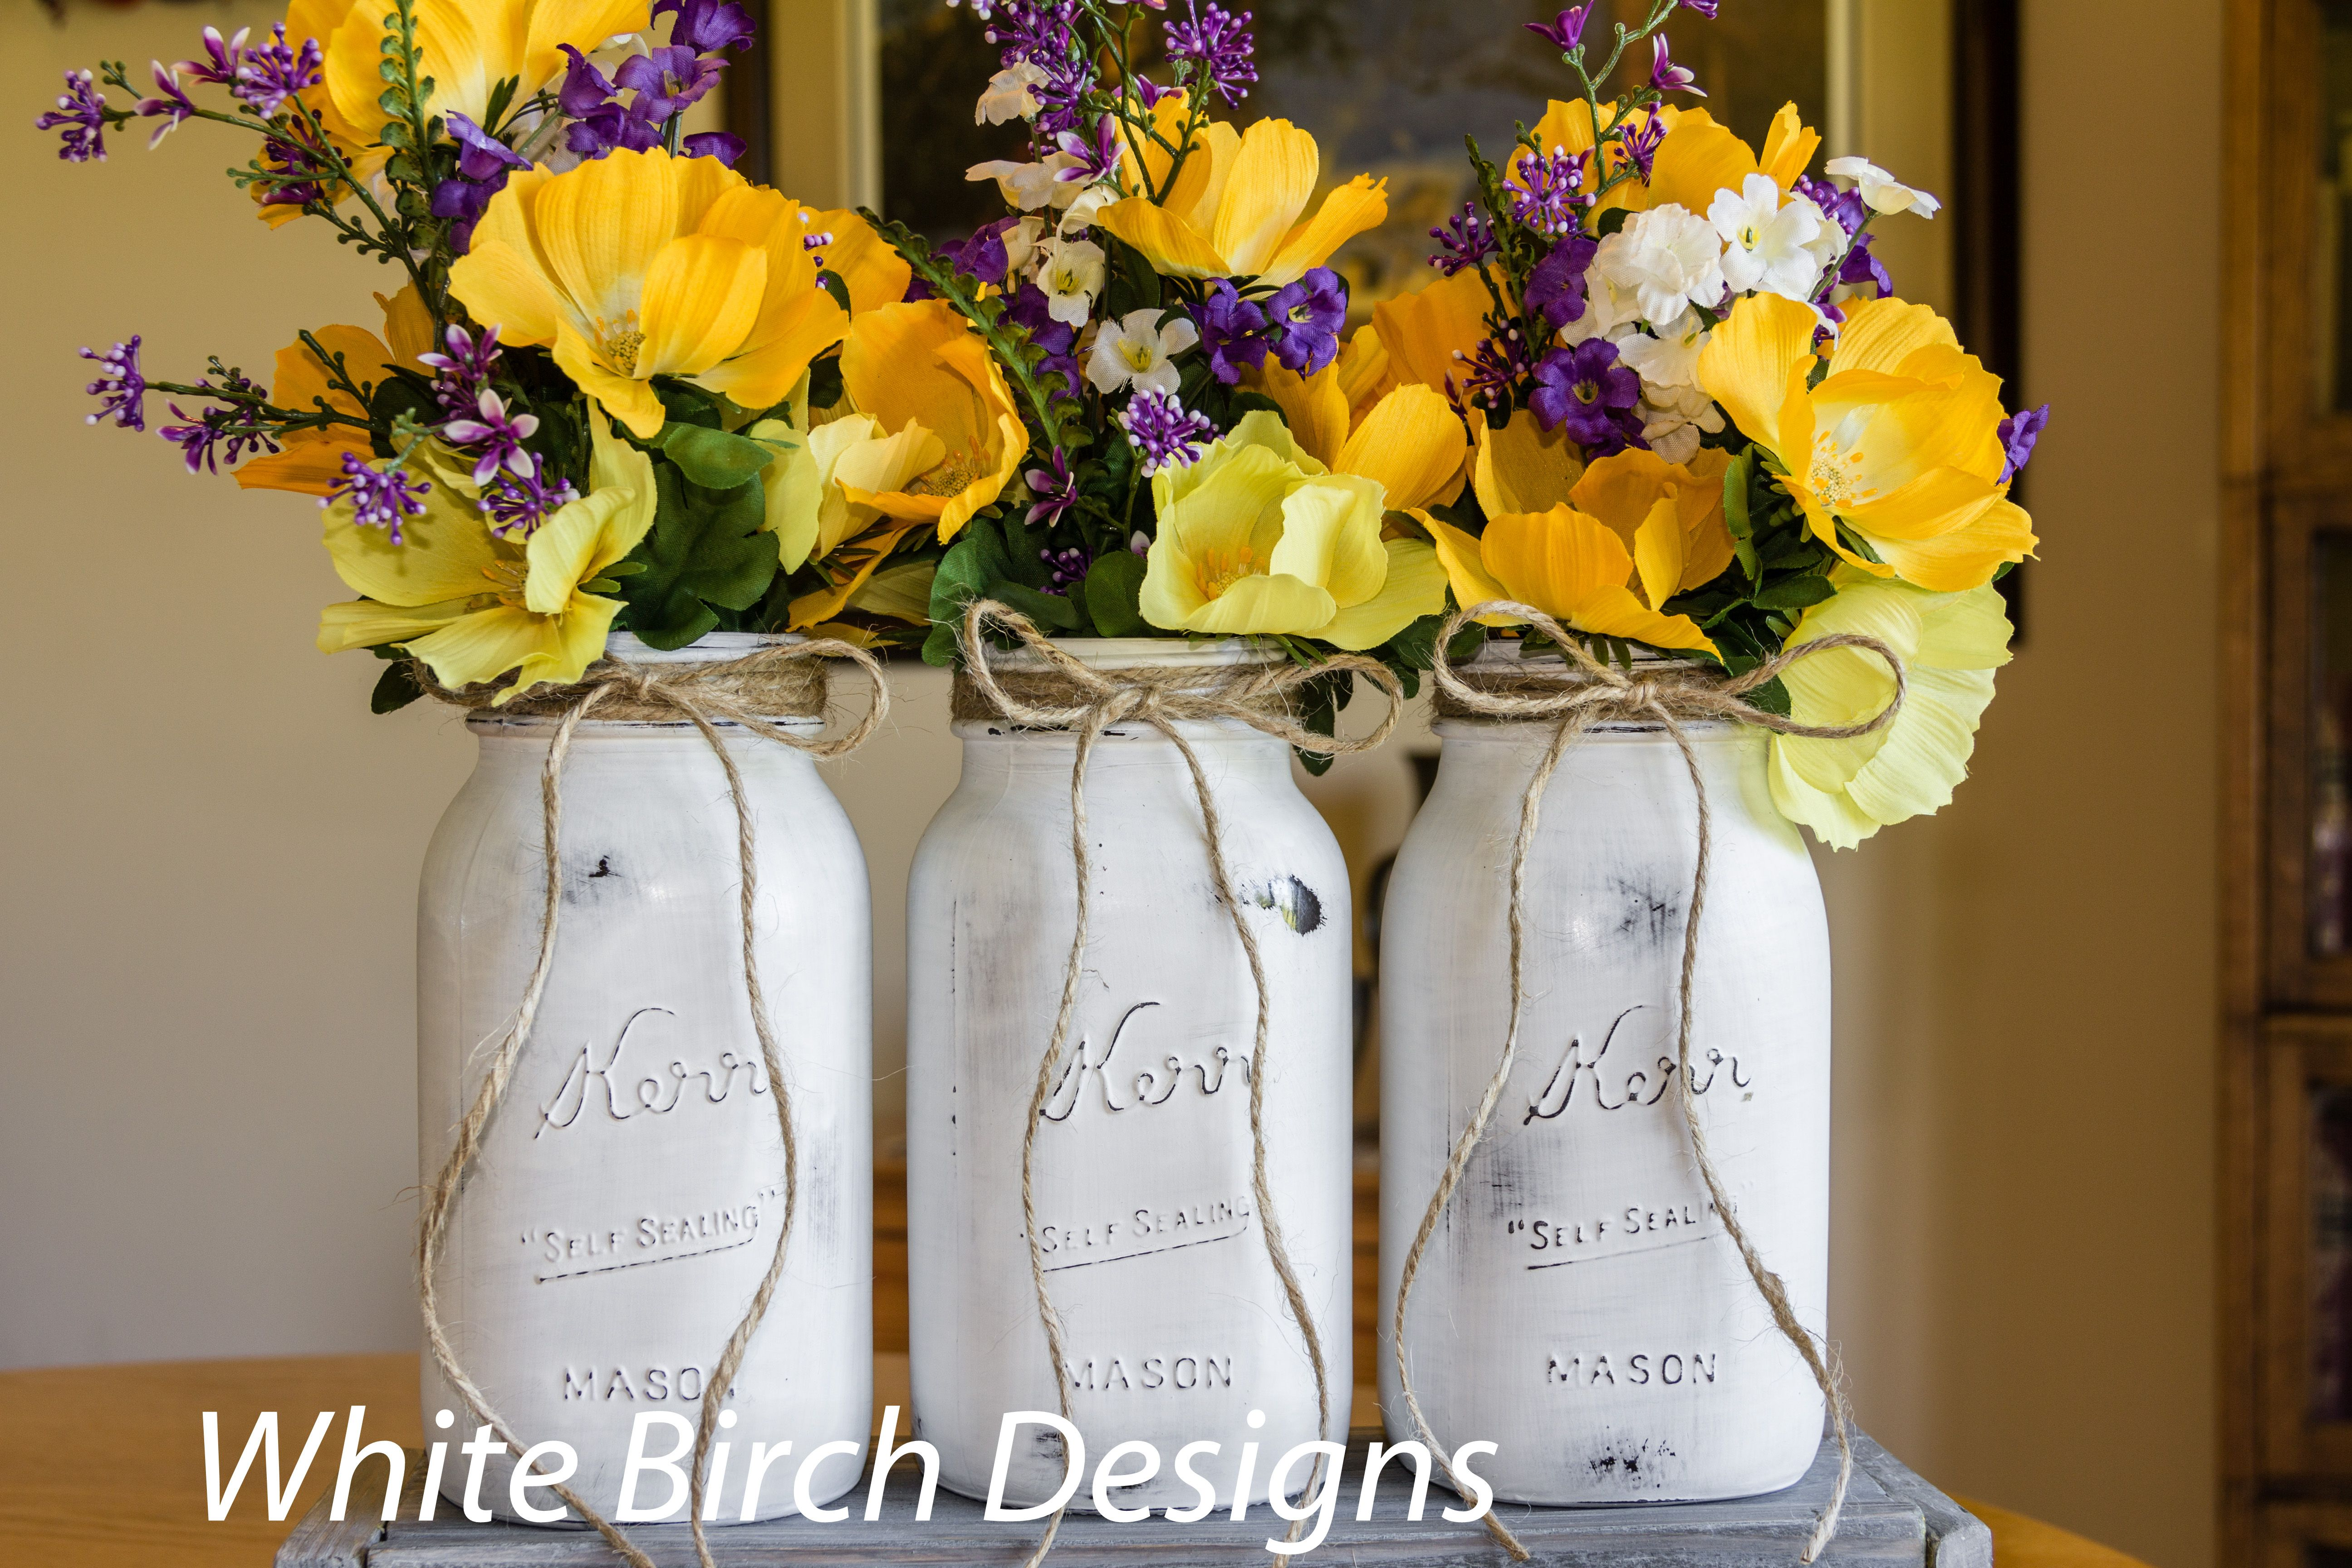 Pure white mason jars with distressing have full bouquets in yellow